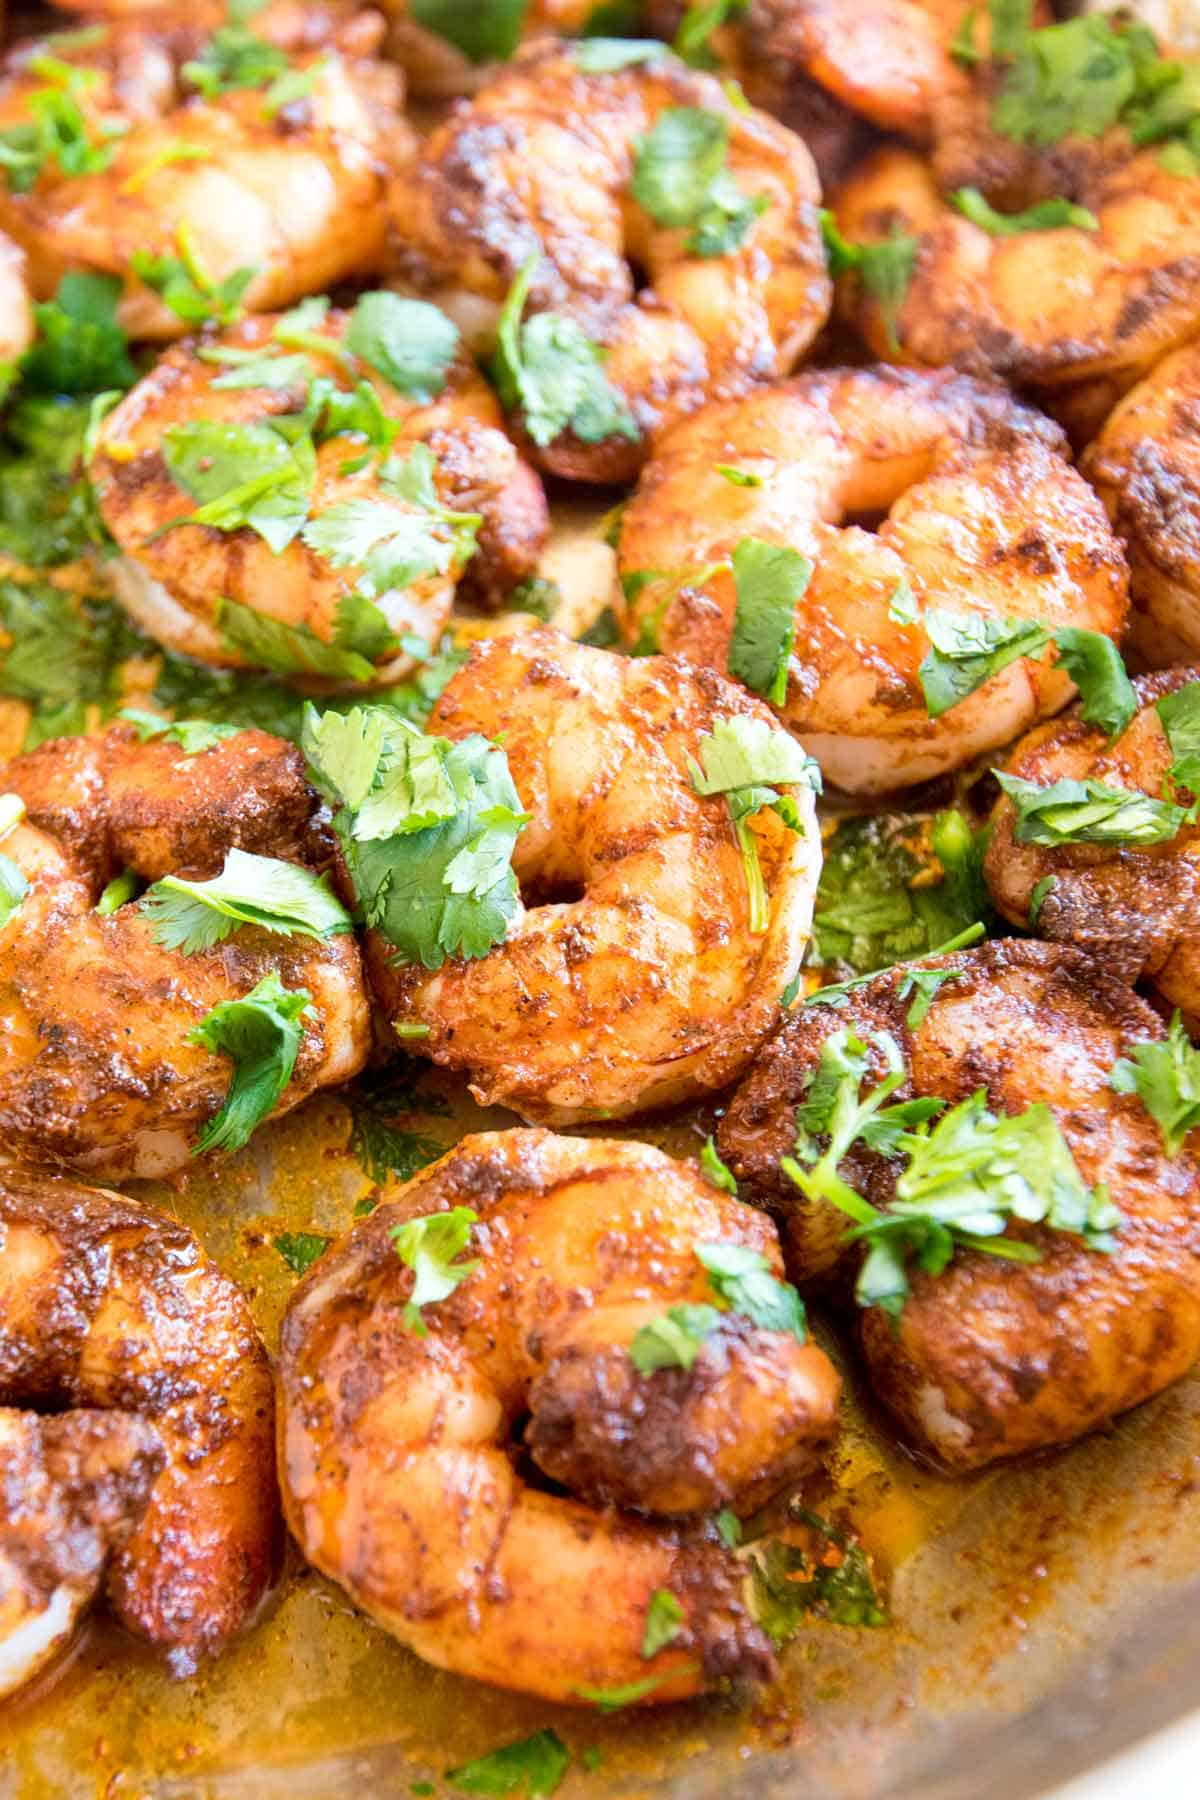 Easy chile butter shrimp tacos recipe cooking chile butter shrimp for tacos forumfinder Image collections